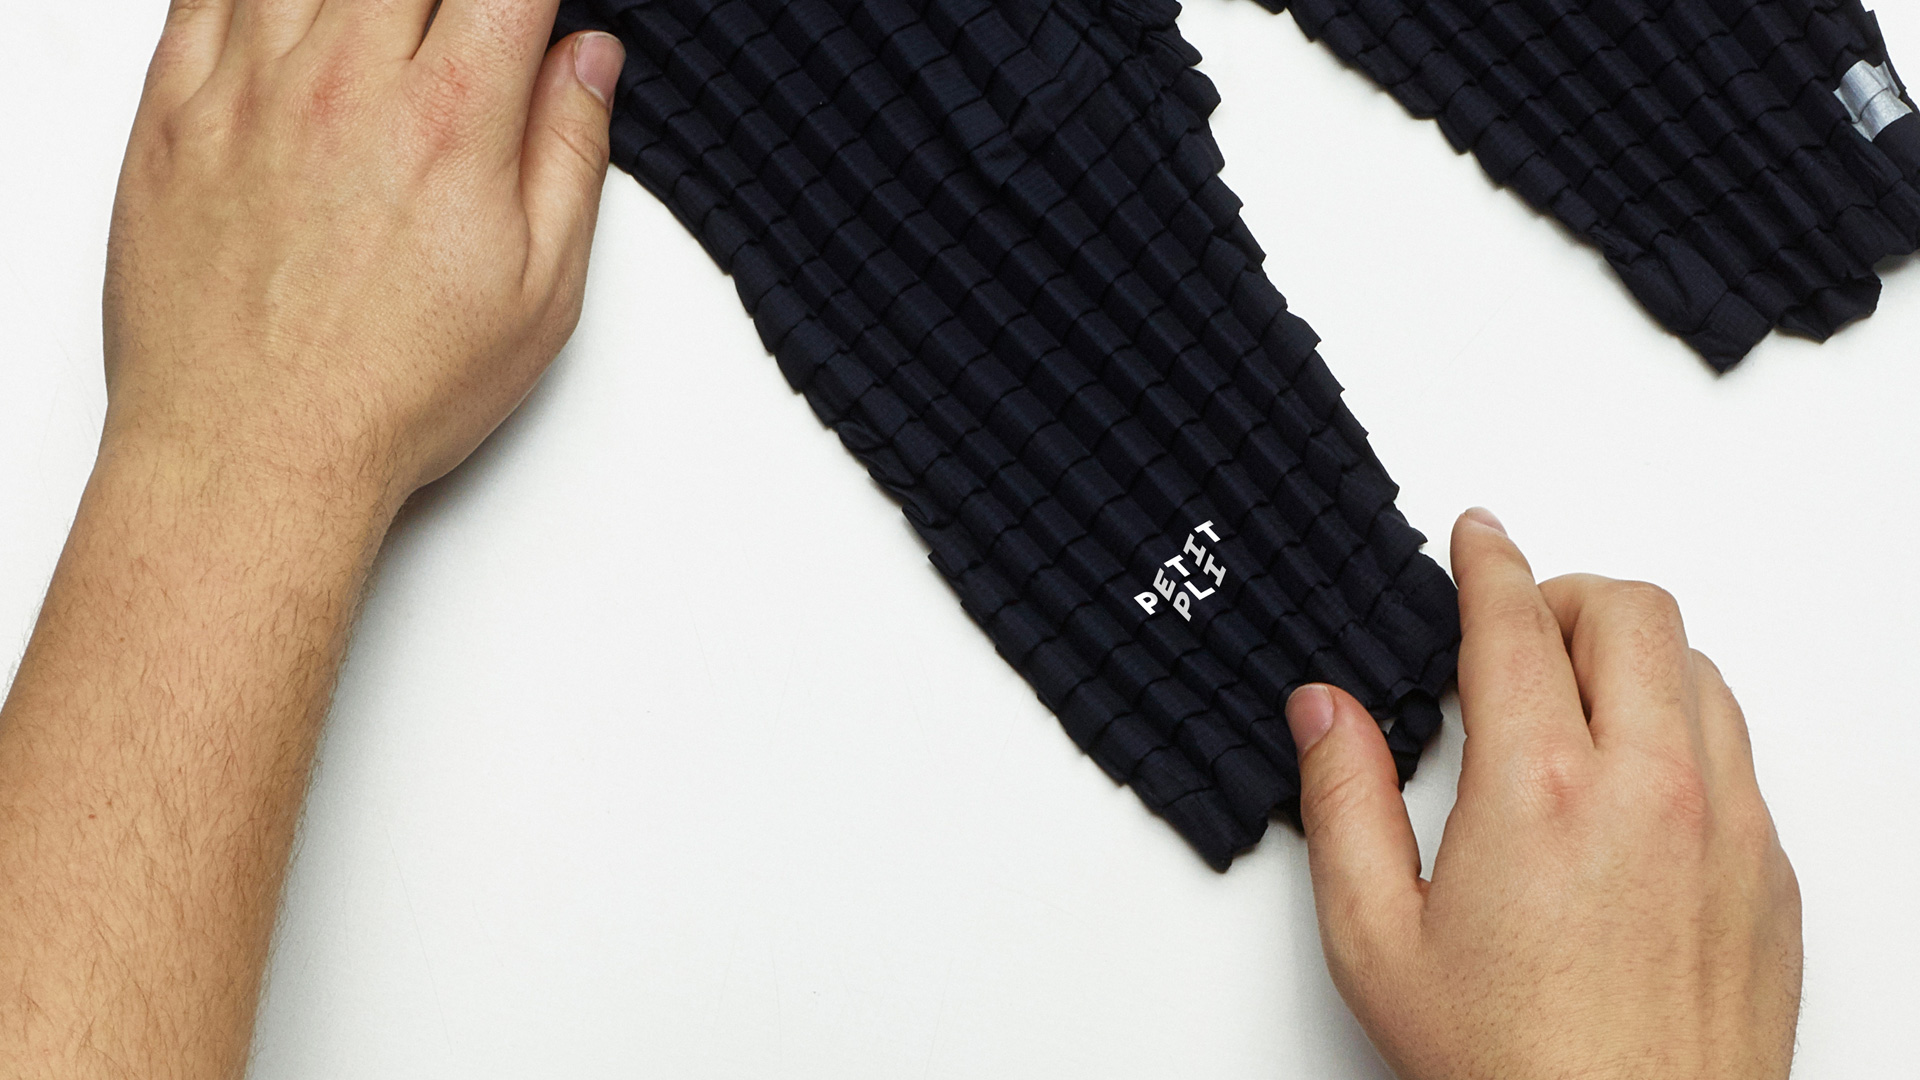 Stretchy kids' clothing Petit Pli gets an identity that grows